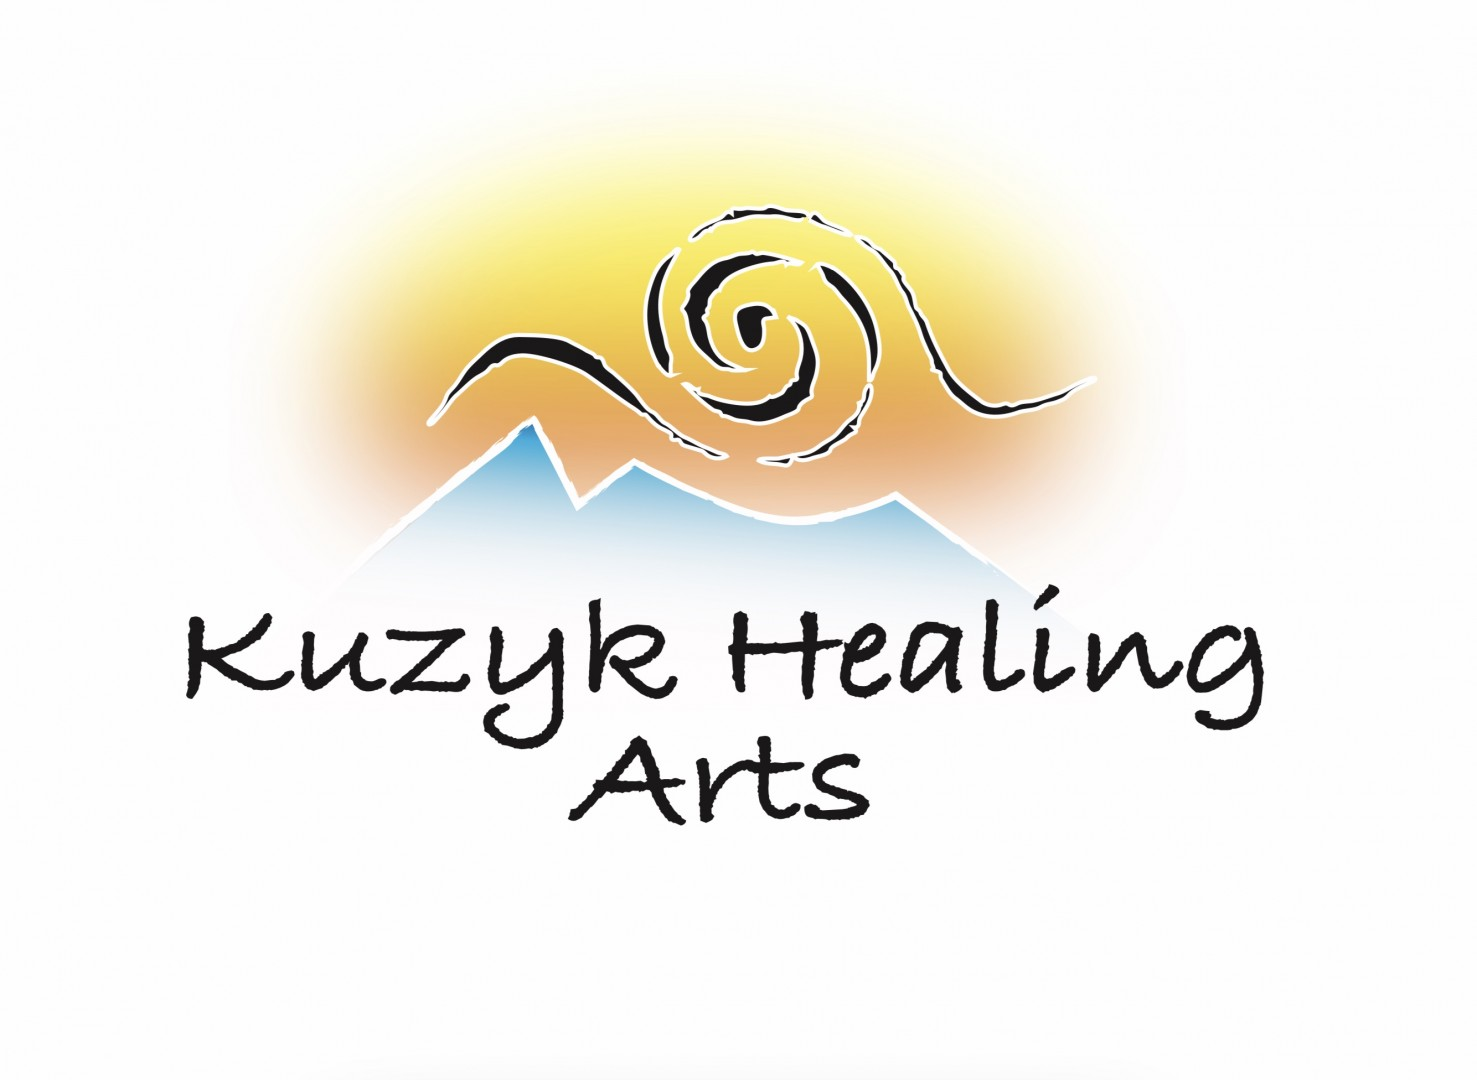 Services - Kuzyk Healing Arts in Sandpoint, Idaho